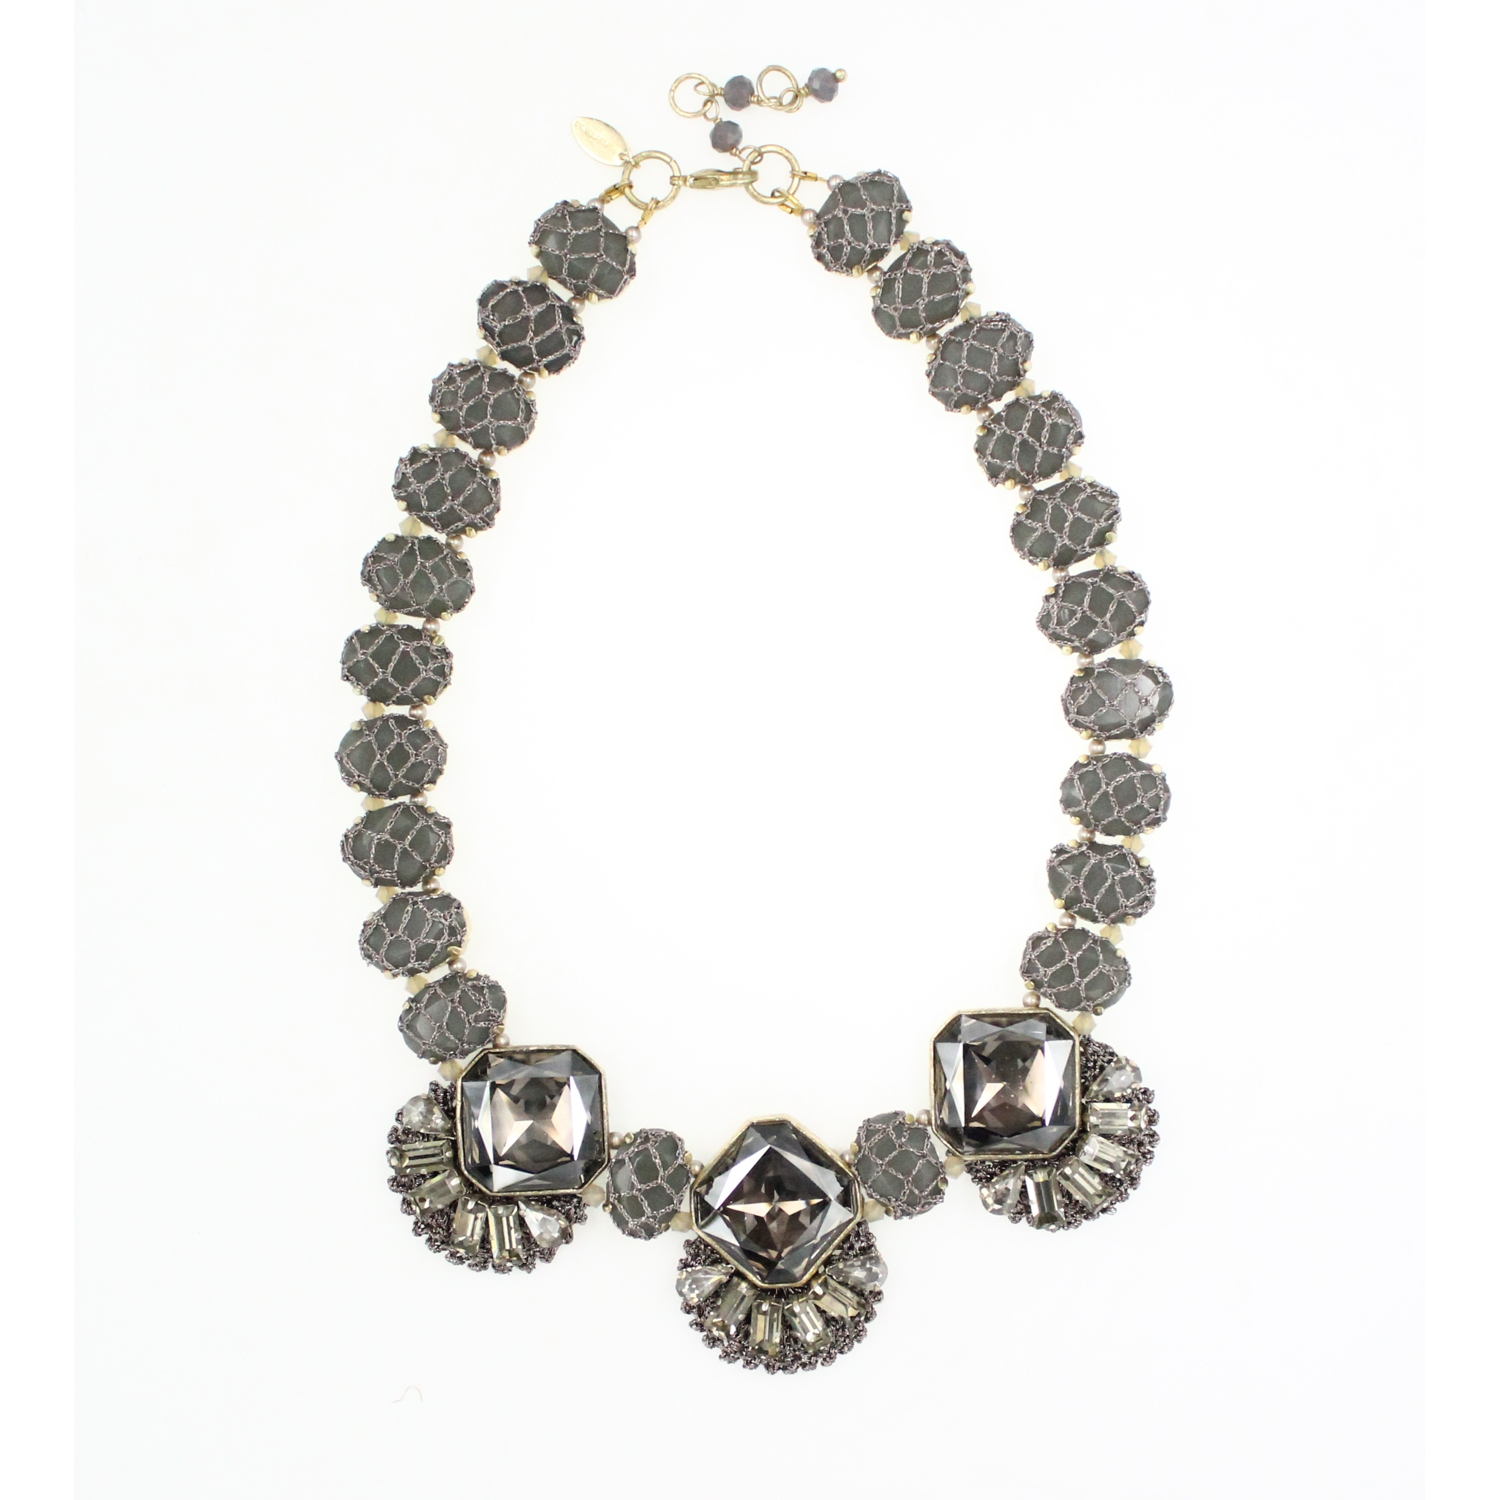 Frangipani Deco Fan Crystal Necklace - Graphite